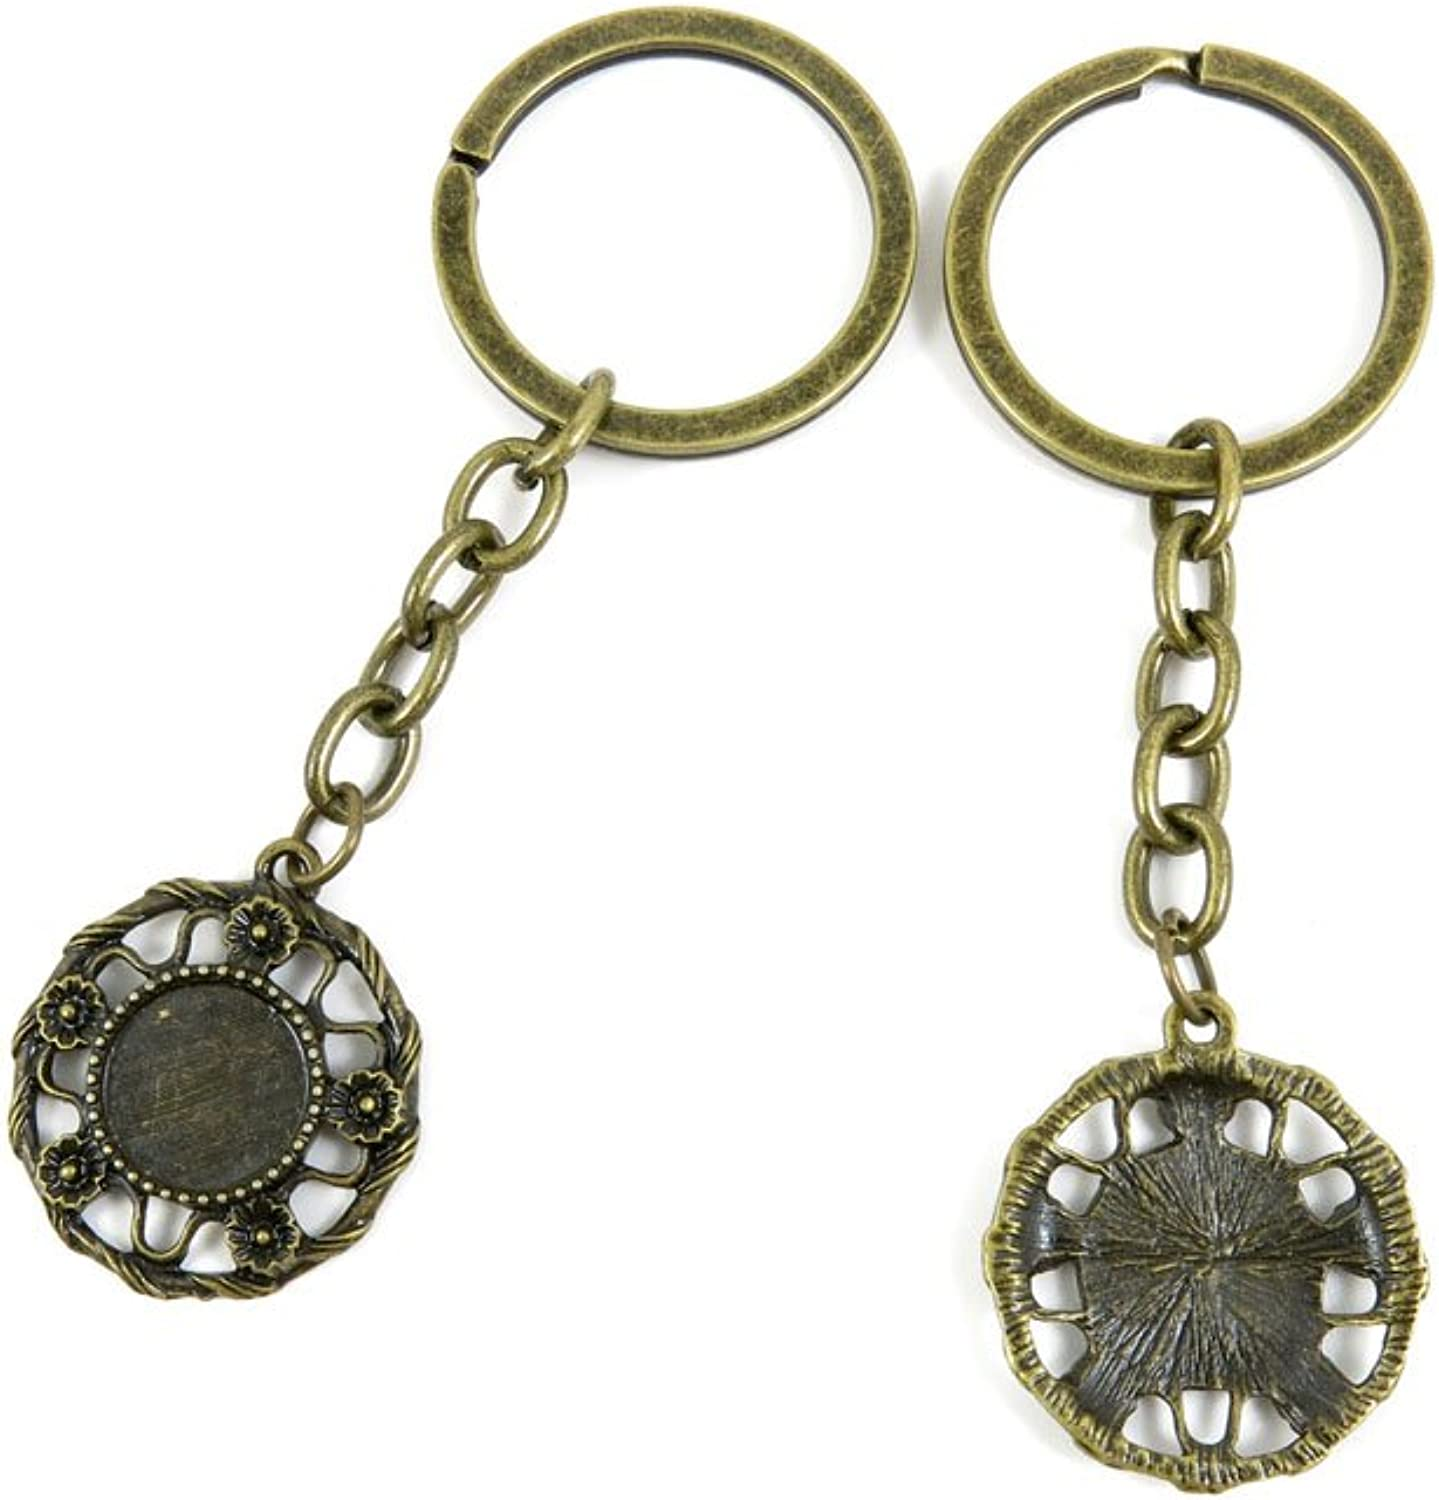 100 PCS Keyrings Keychains Key Ring Chains Tags Jewelry Findings Clasps Buckles Supplies C4VB6 Round Cabochon Frame Blank 12MM